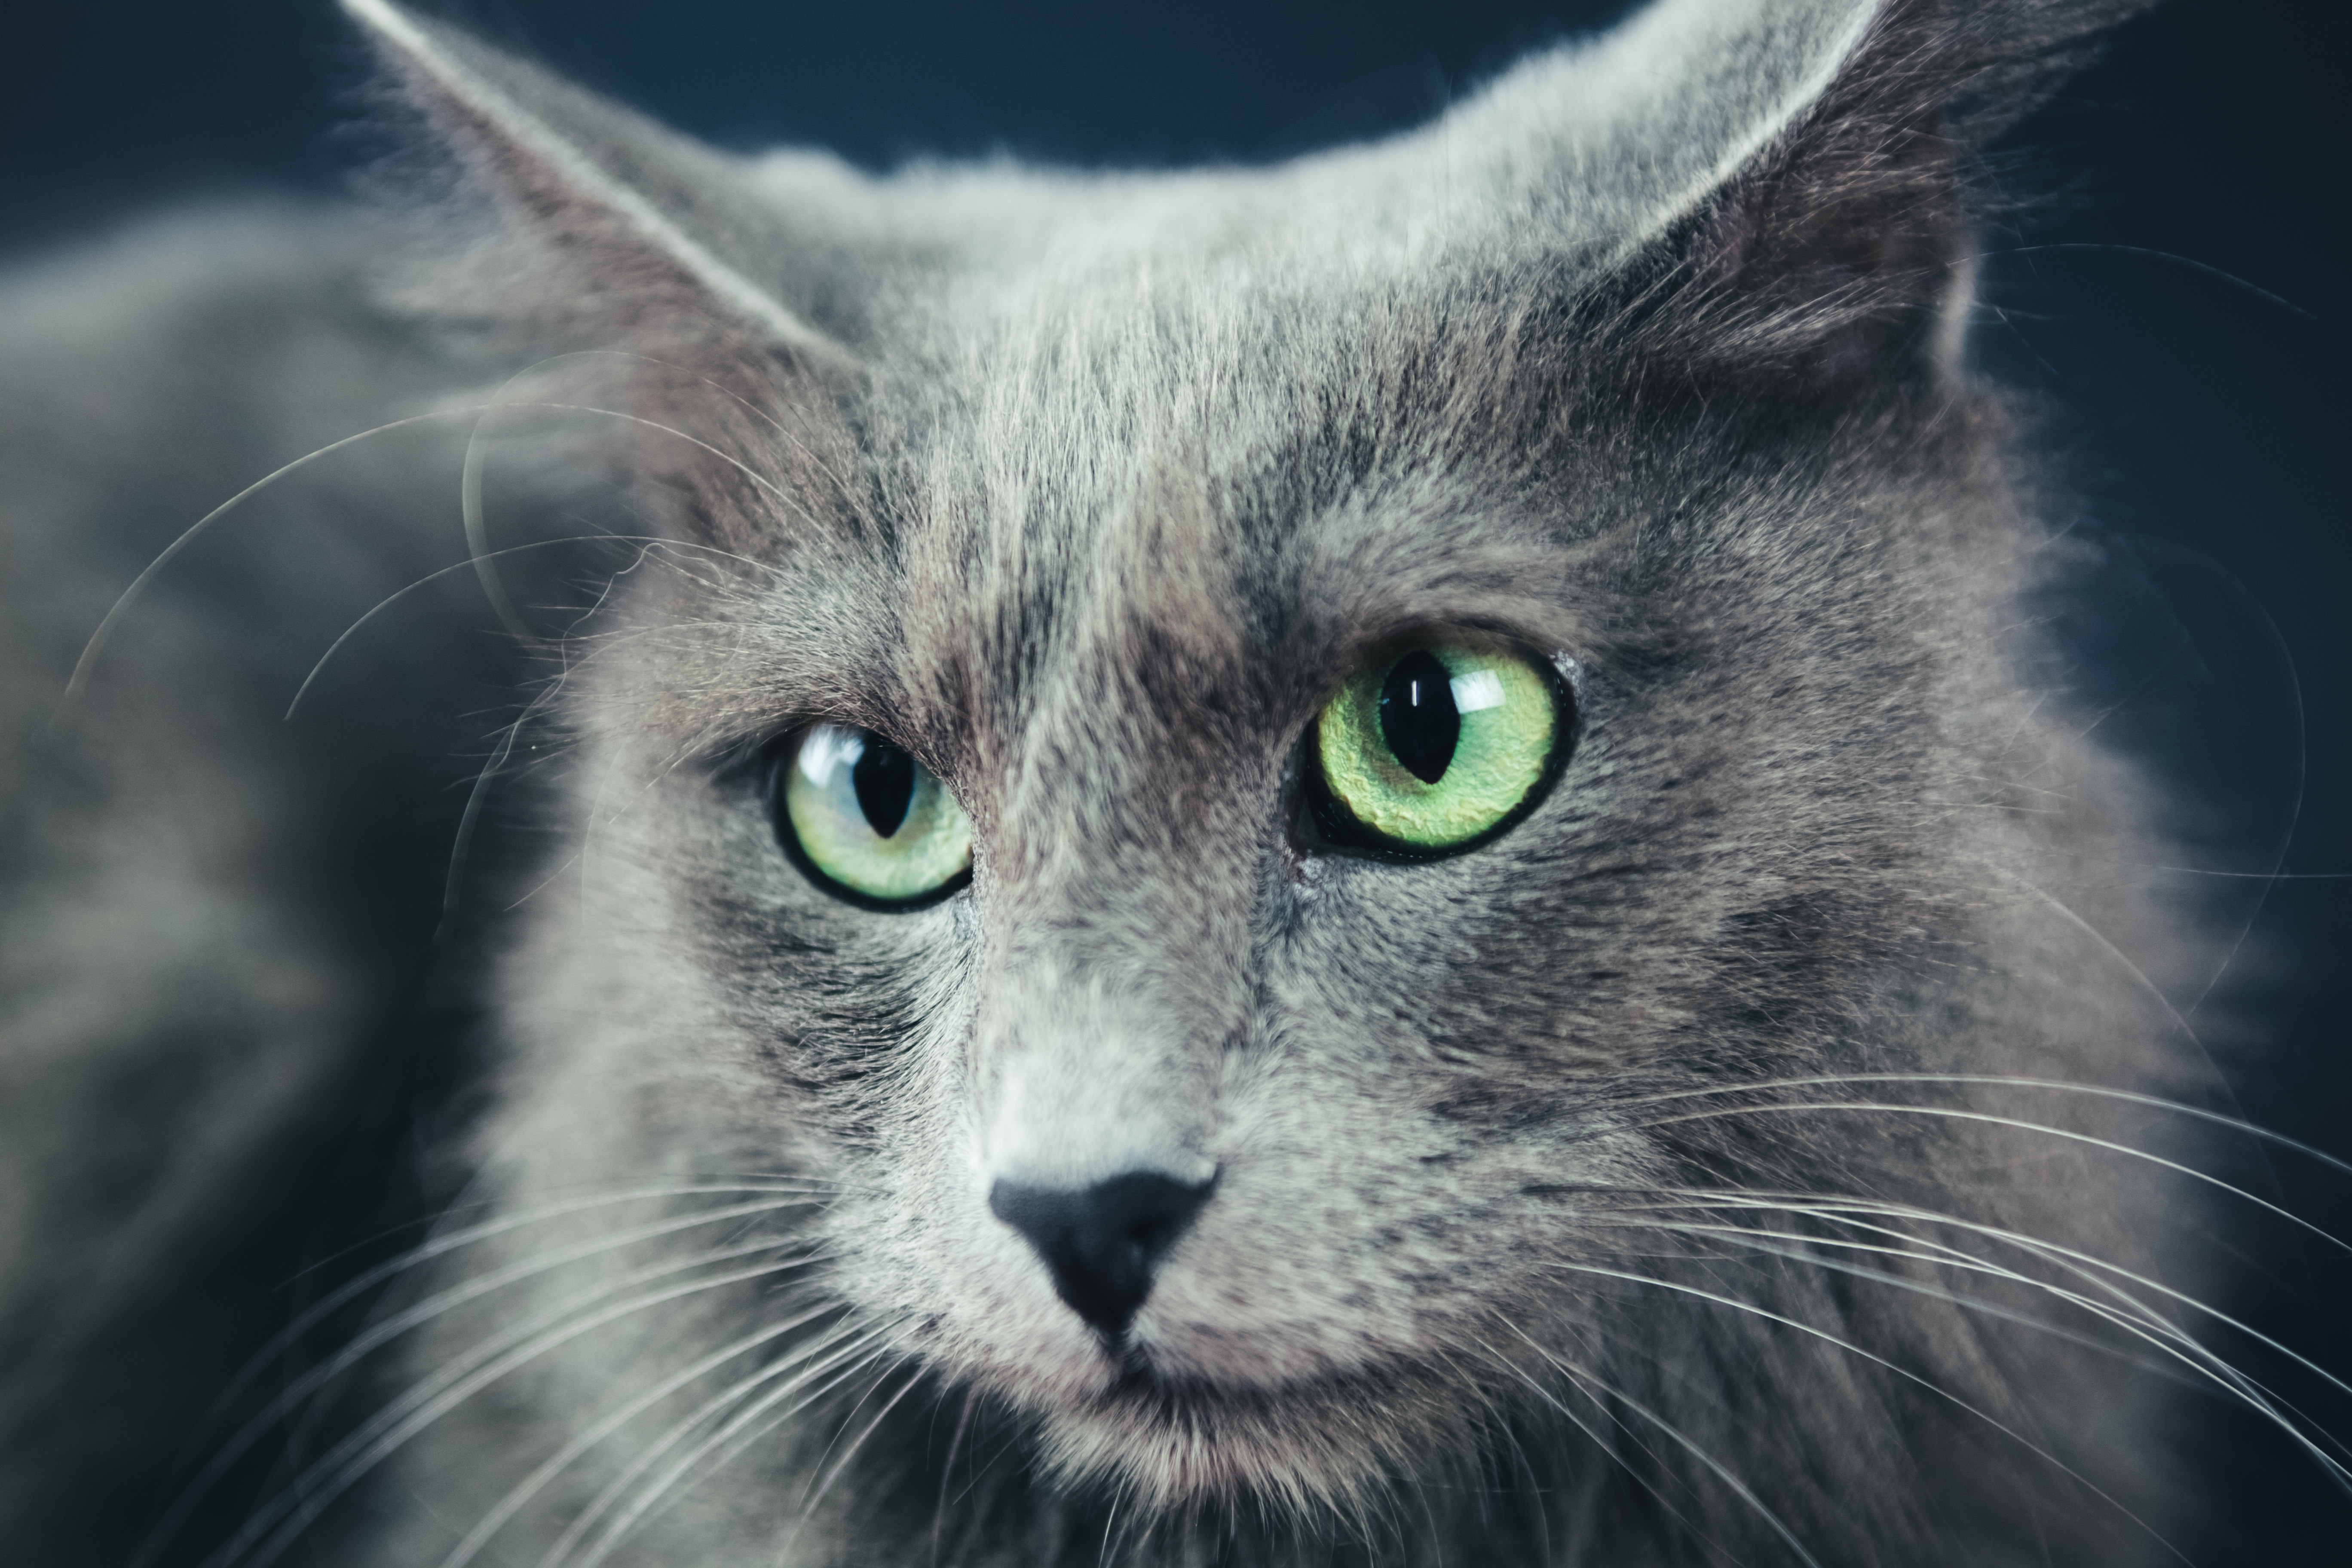 How To Identify A Nebelung Cat Cuteness